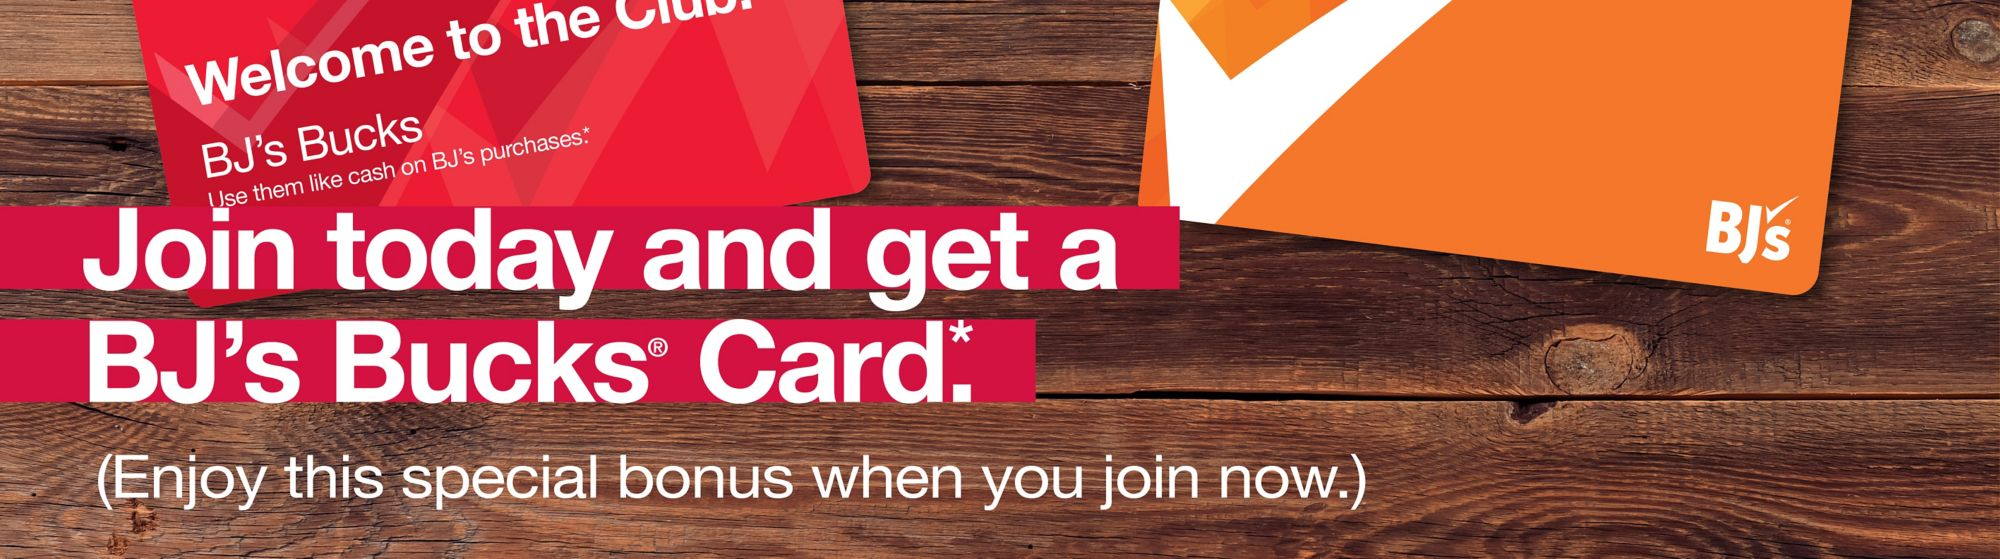 Join today and get a BJ's Bucks Card.